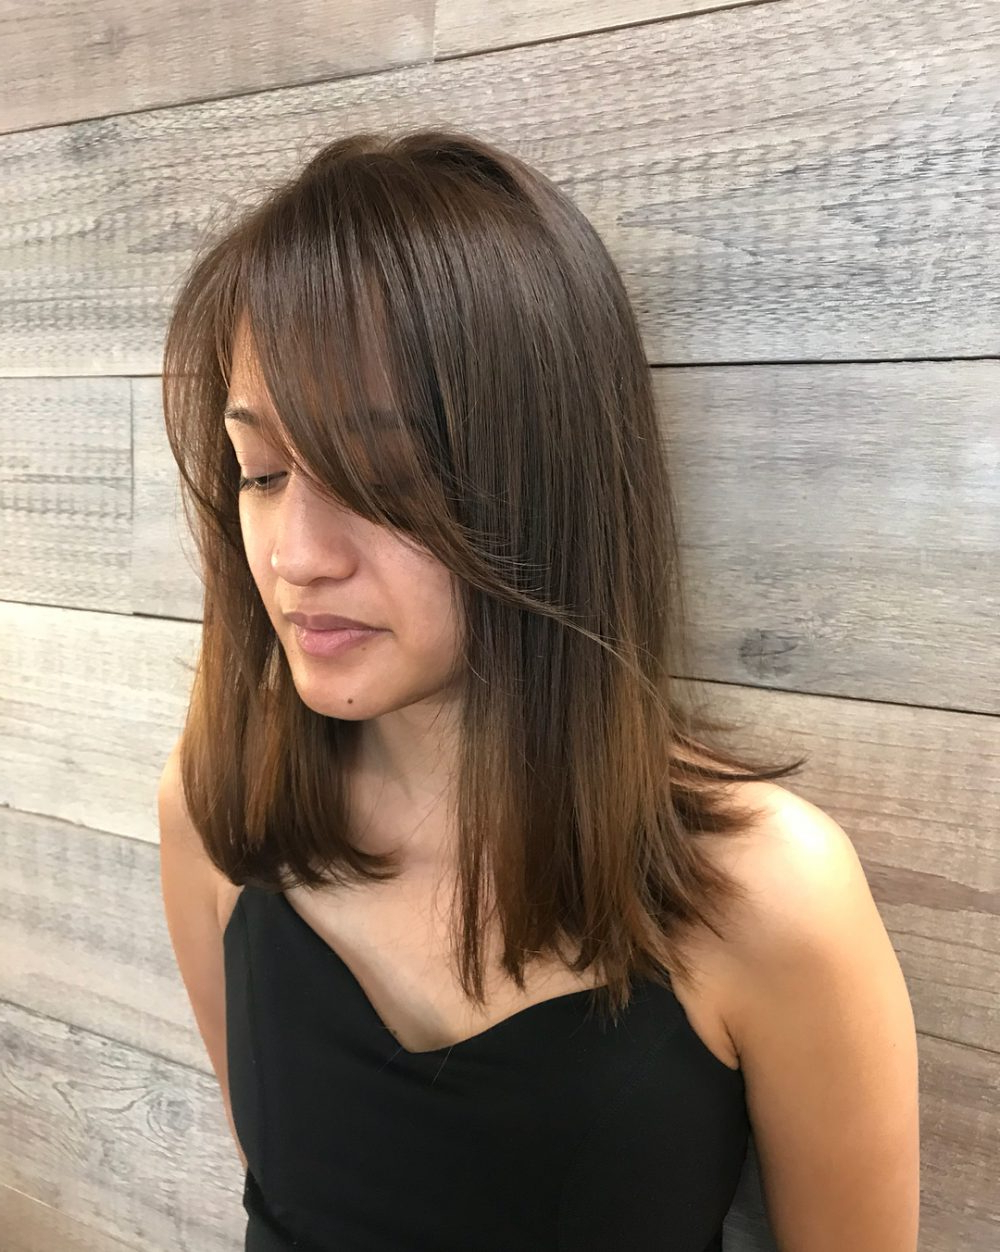 Most Current Medium Haircuts With Layers And Side Swept Bangs For Side Swept Bangs: 43 Ideas That Are Hot In  (View 14 of 20)